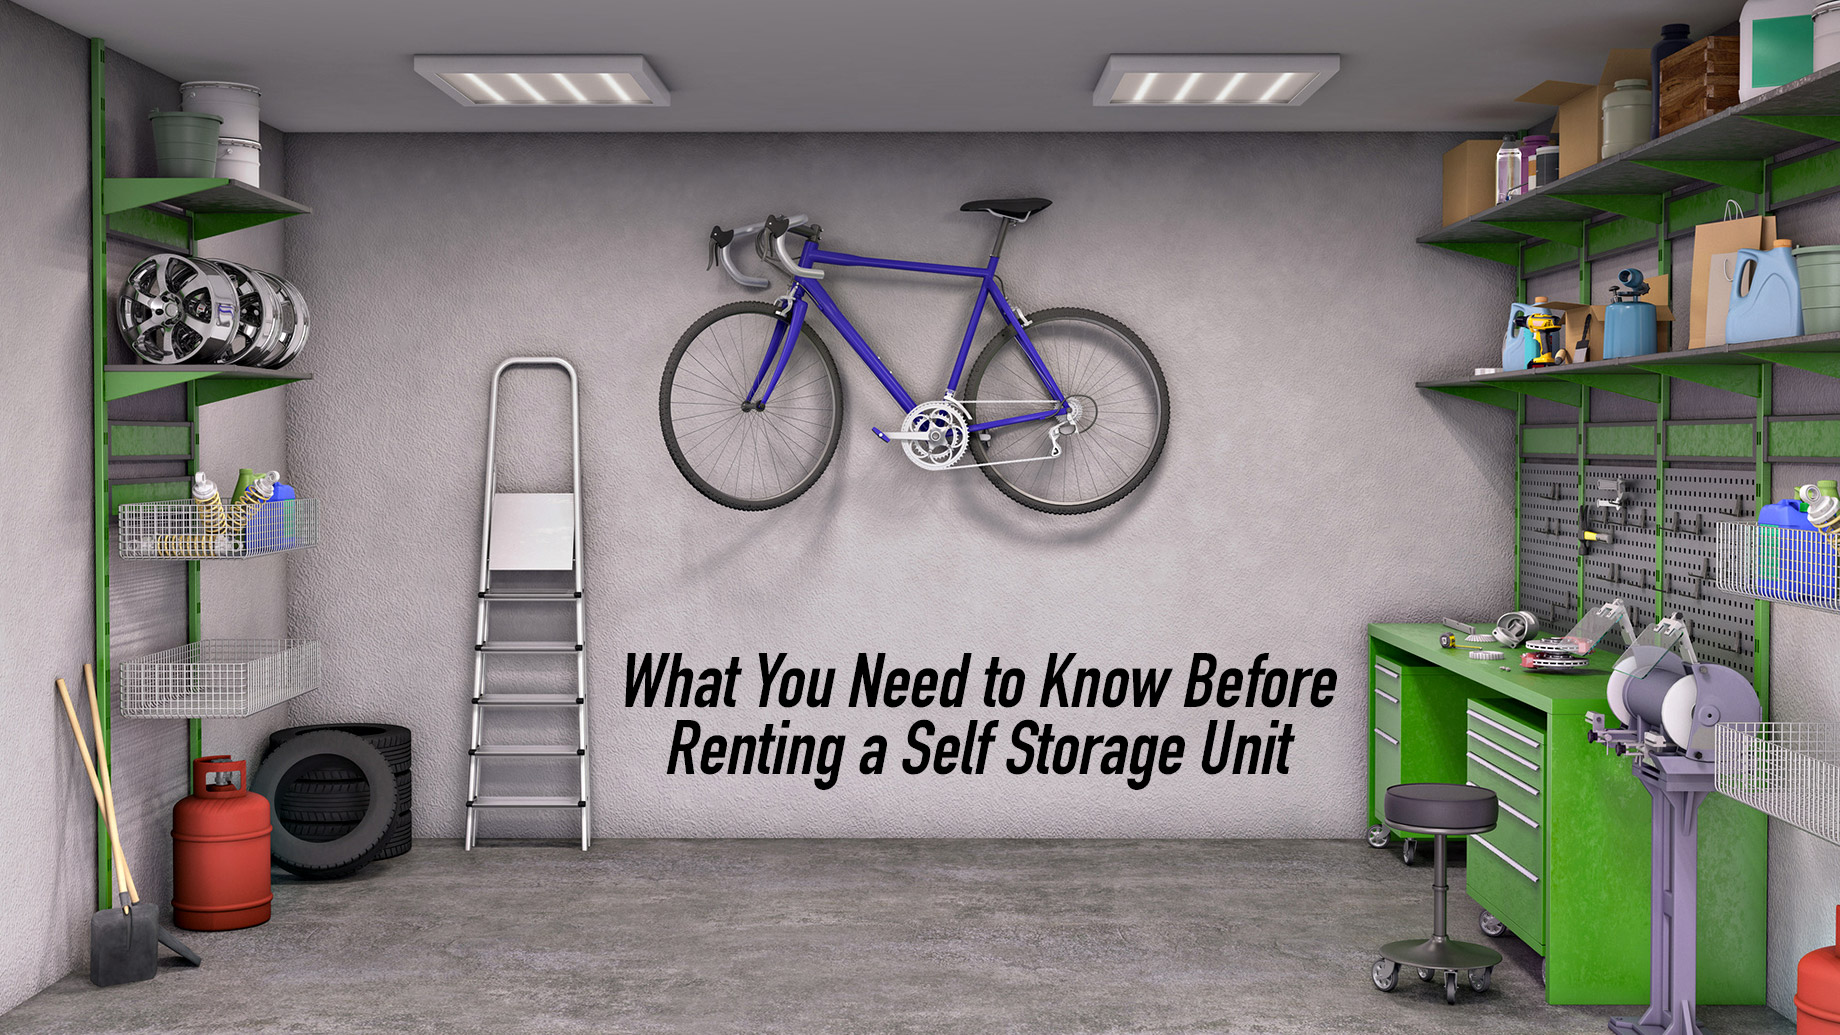 What You Need to Know Before Renting a Self Storage Unit